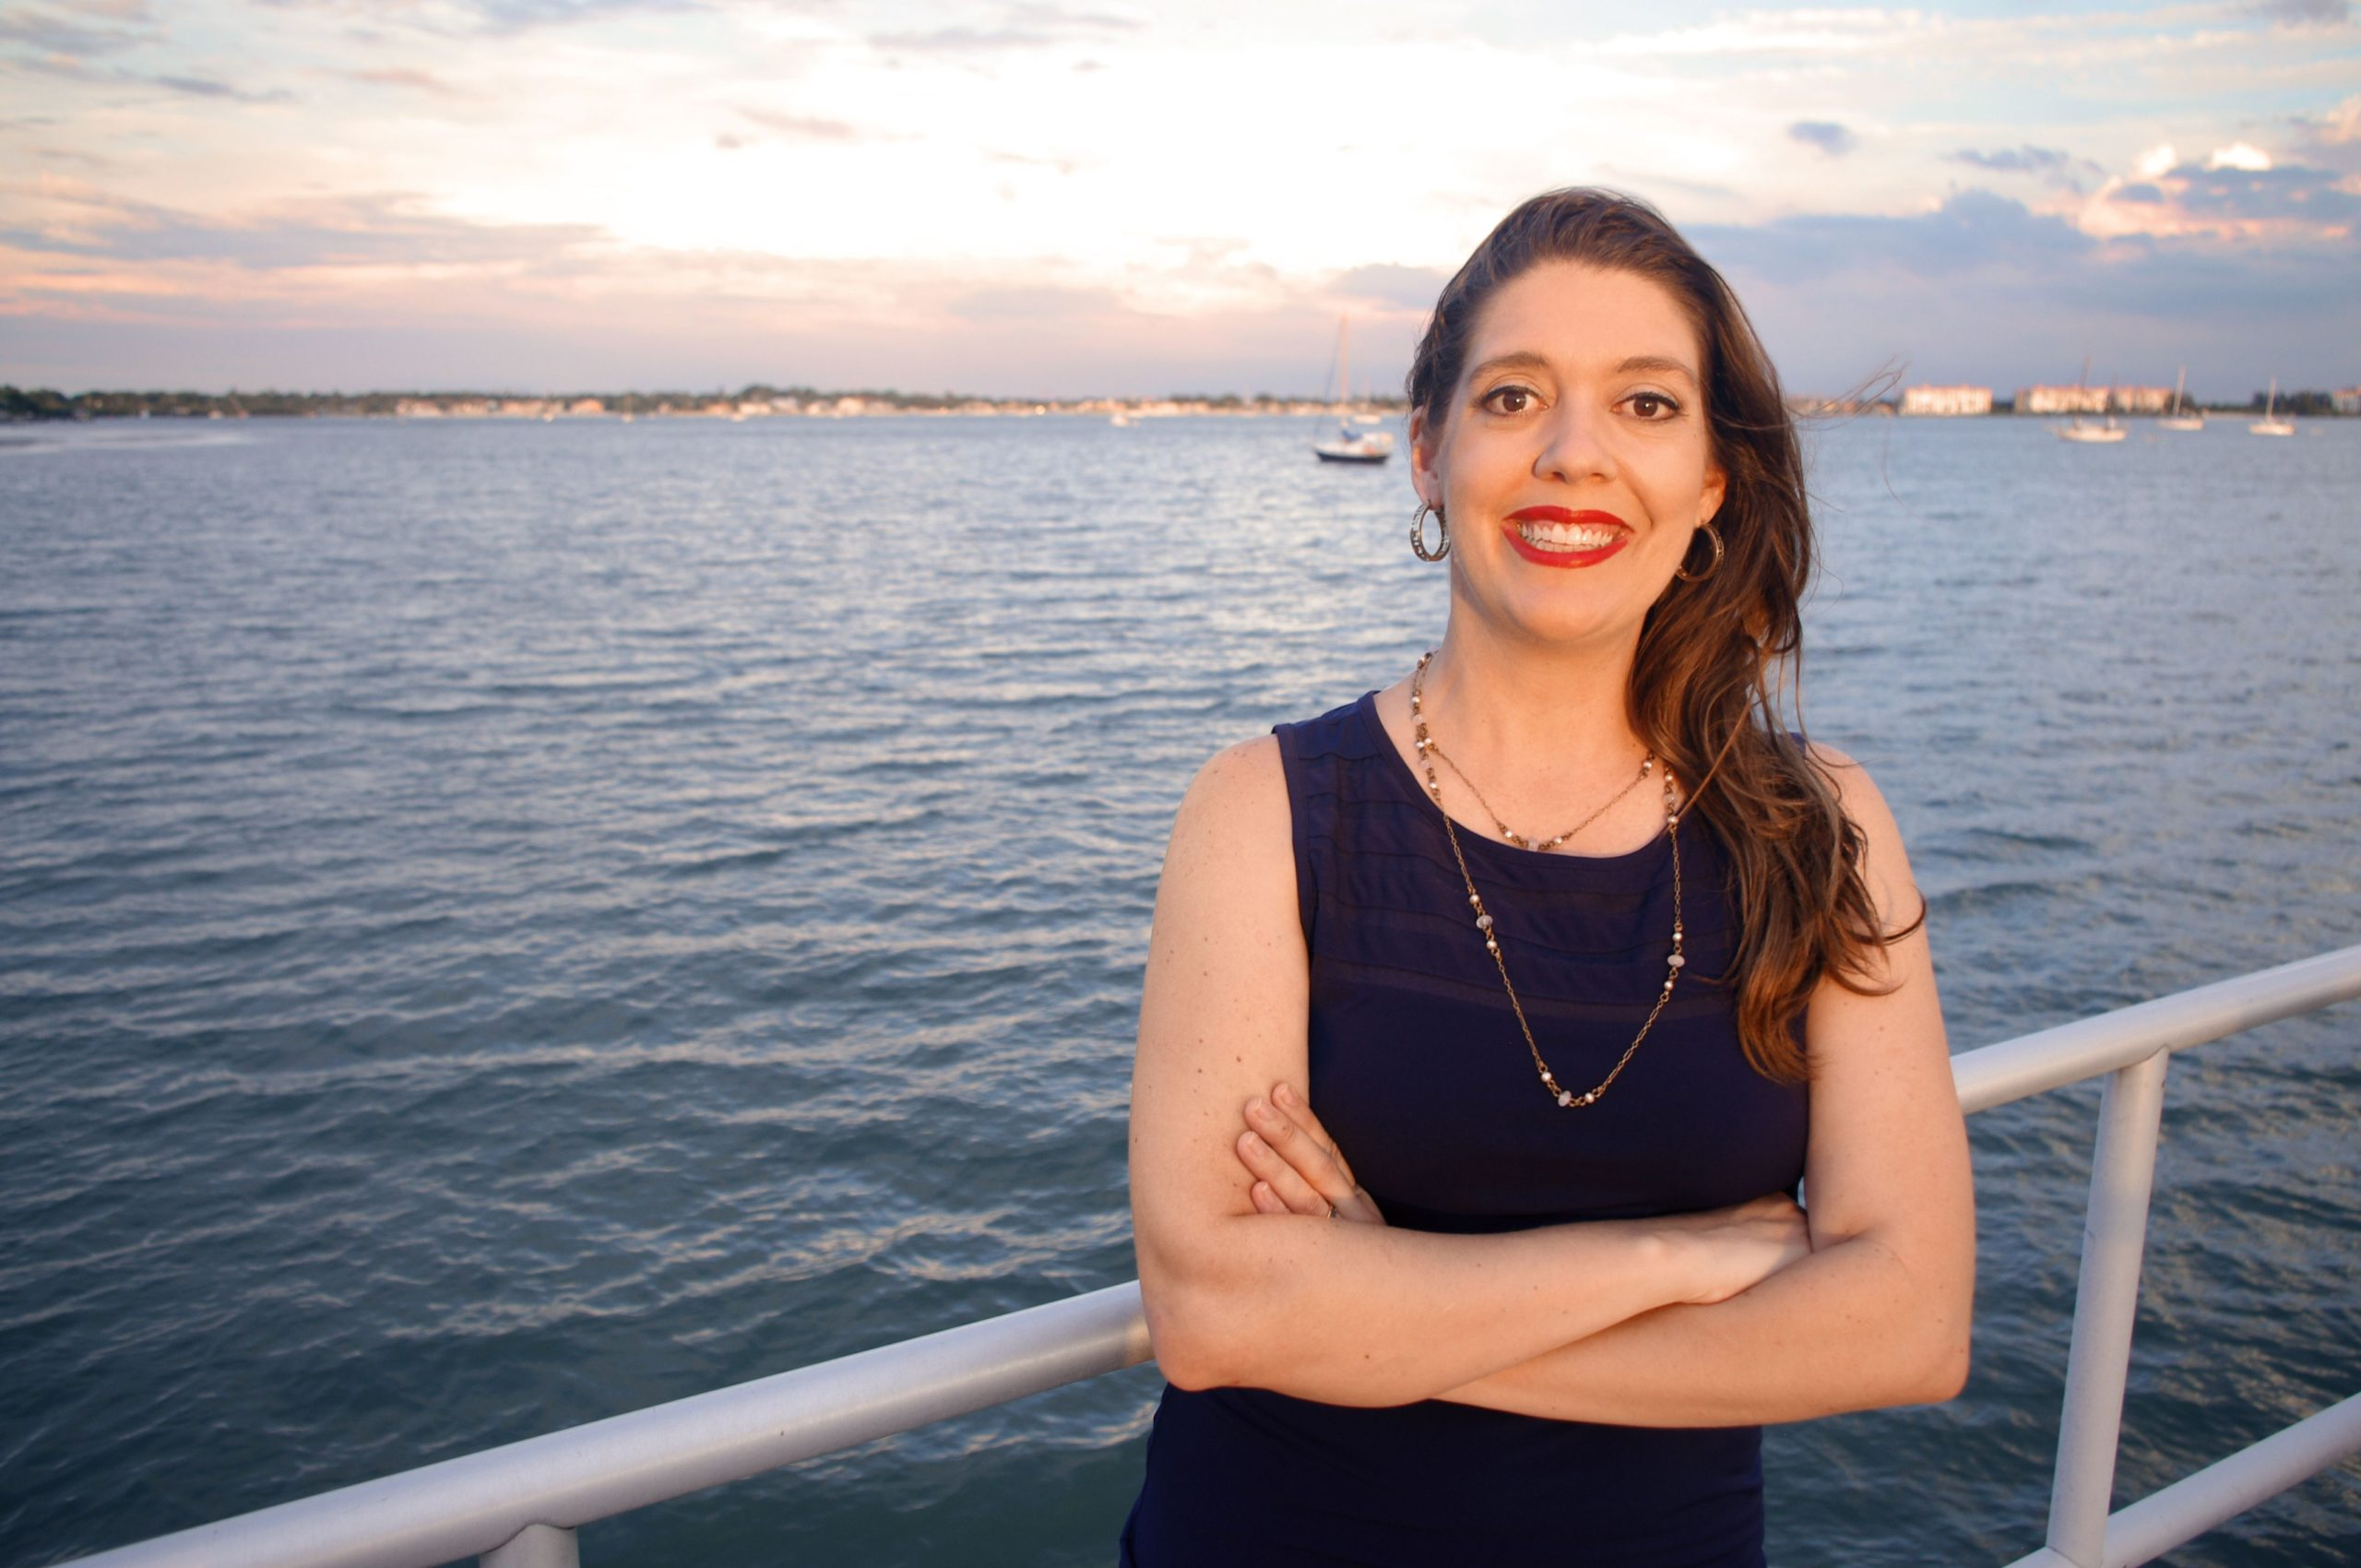 A woman in a dark, sleeveless shirt by the water at sunset.